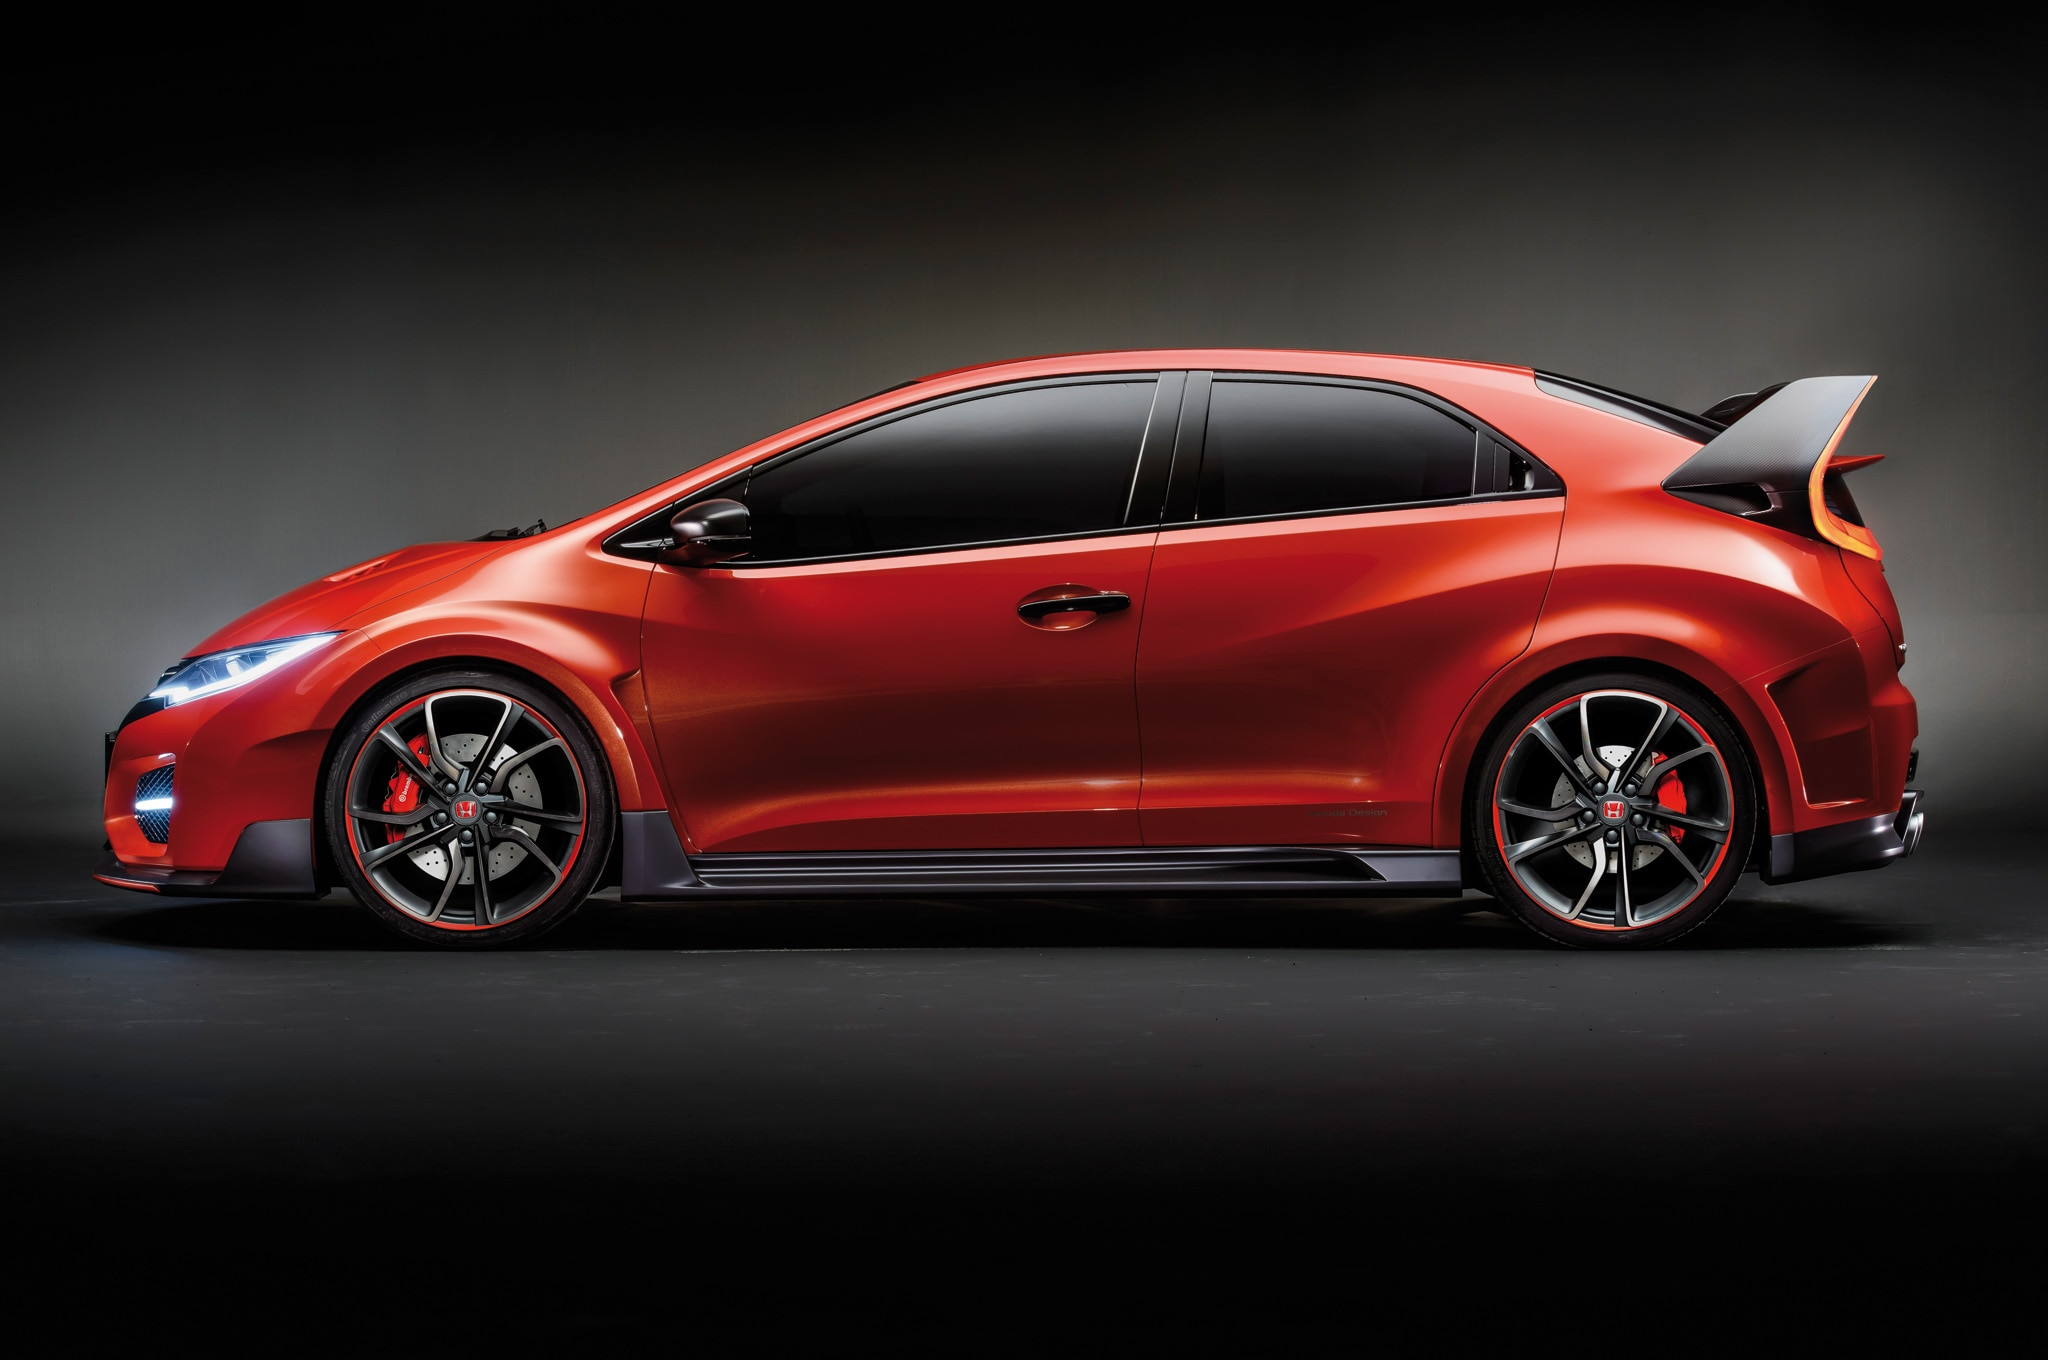 Honda Civic Type R Concept Side View